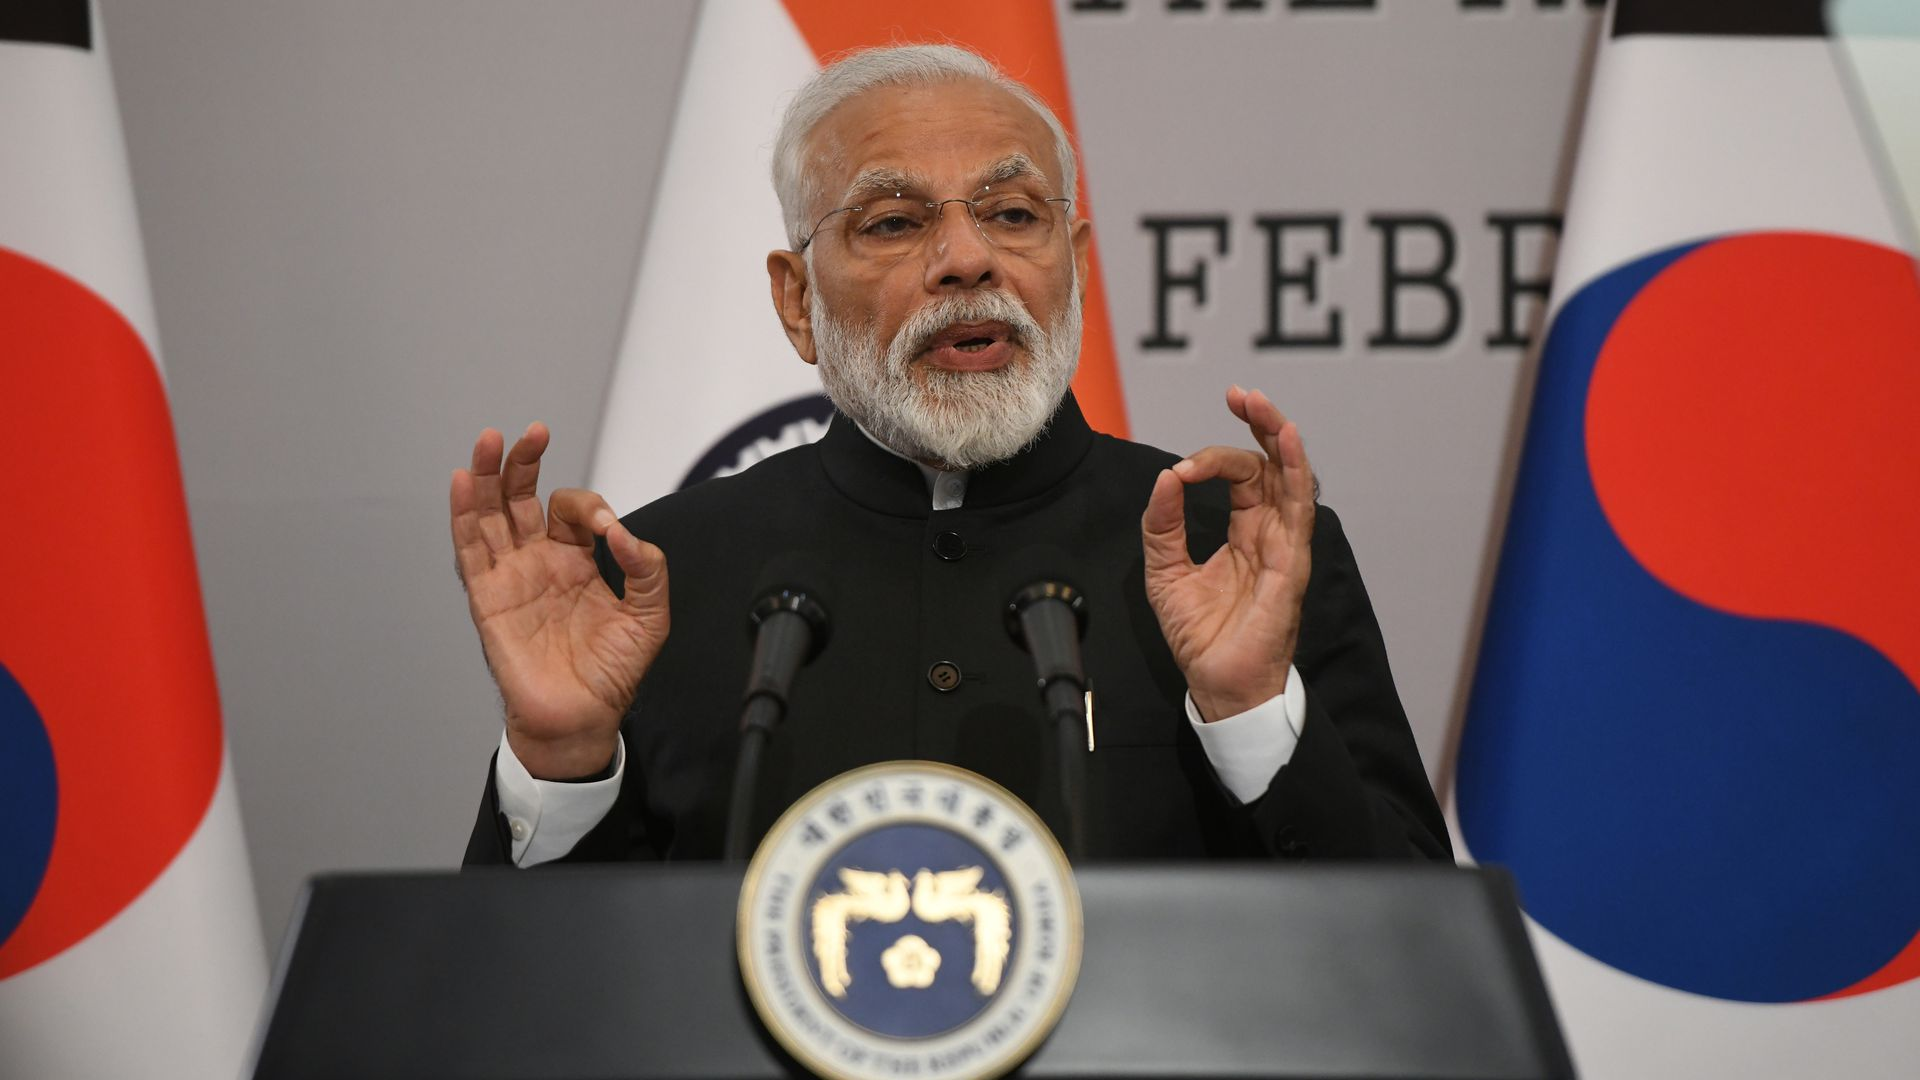 India's Prime Minister Narendra Modi says the country has shot down a satellite in space.